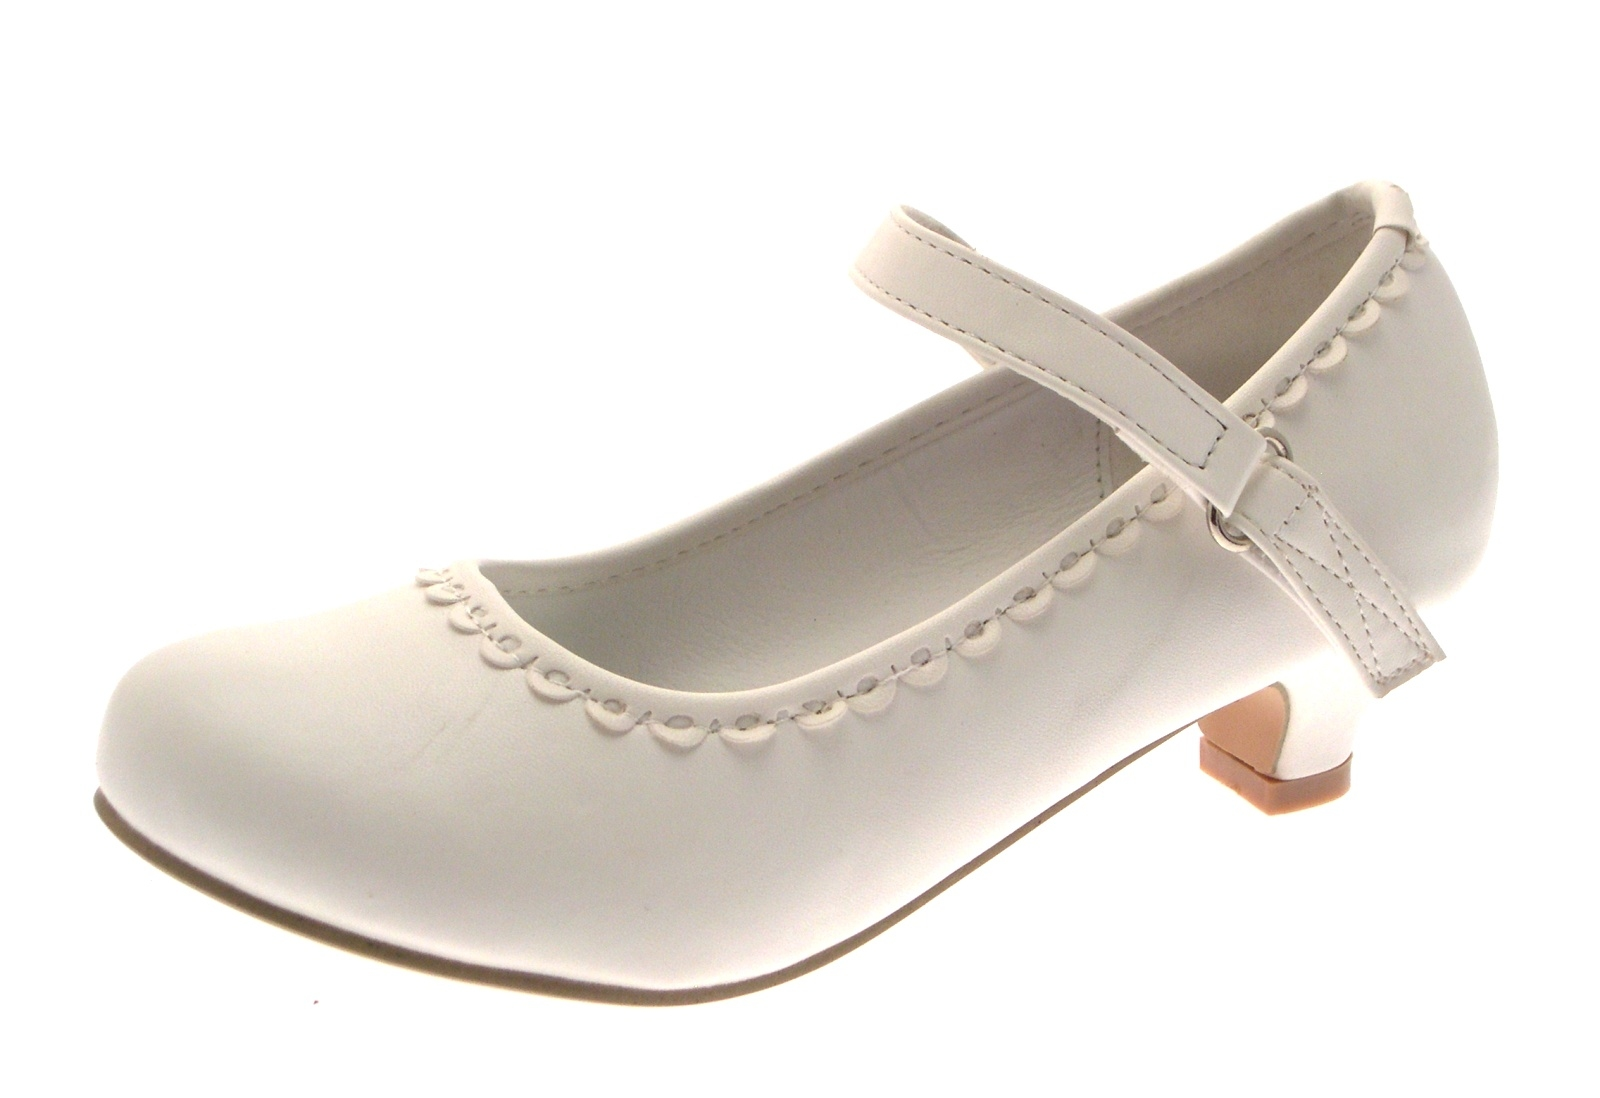 Women shoes small sizes. High quality shoes made in italy. European sizes 31,32,33, UK size 0, 1, 2. US women size 2, 3, 4.